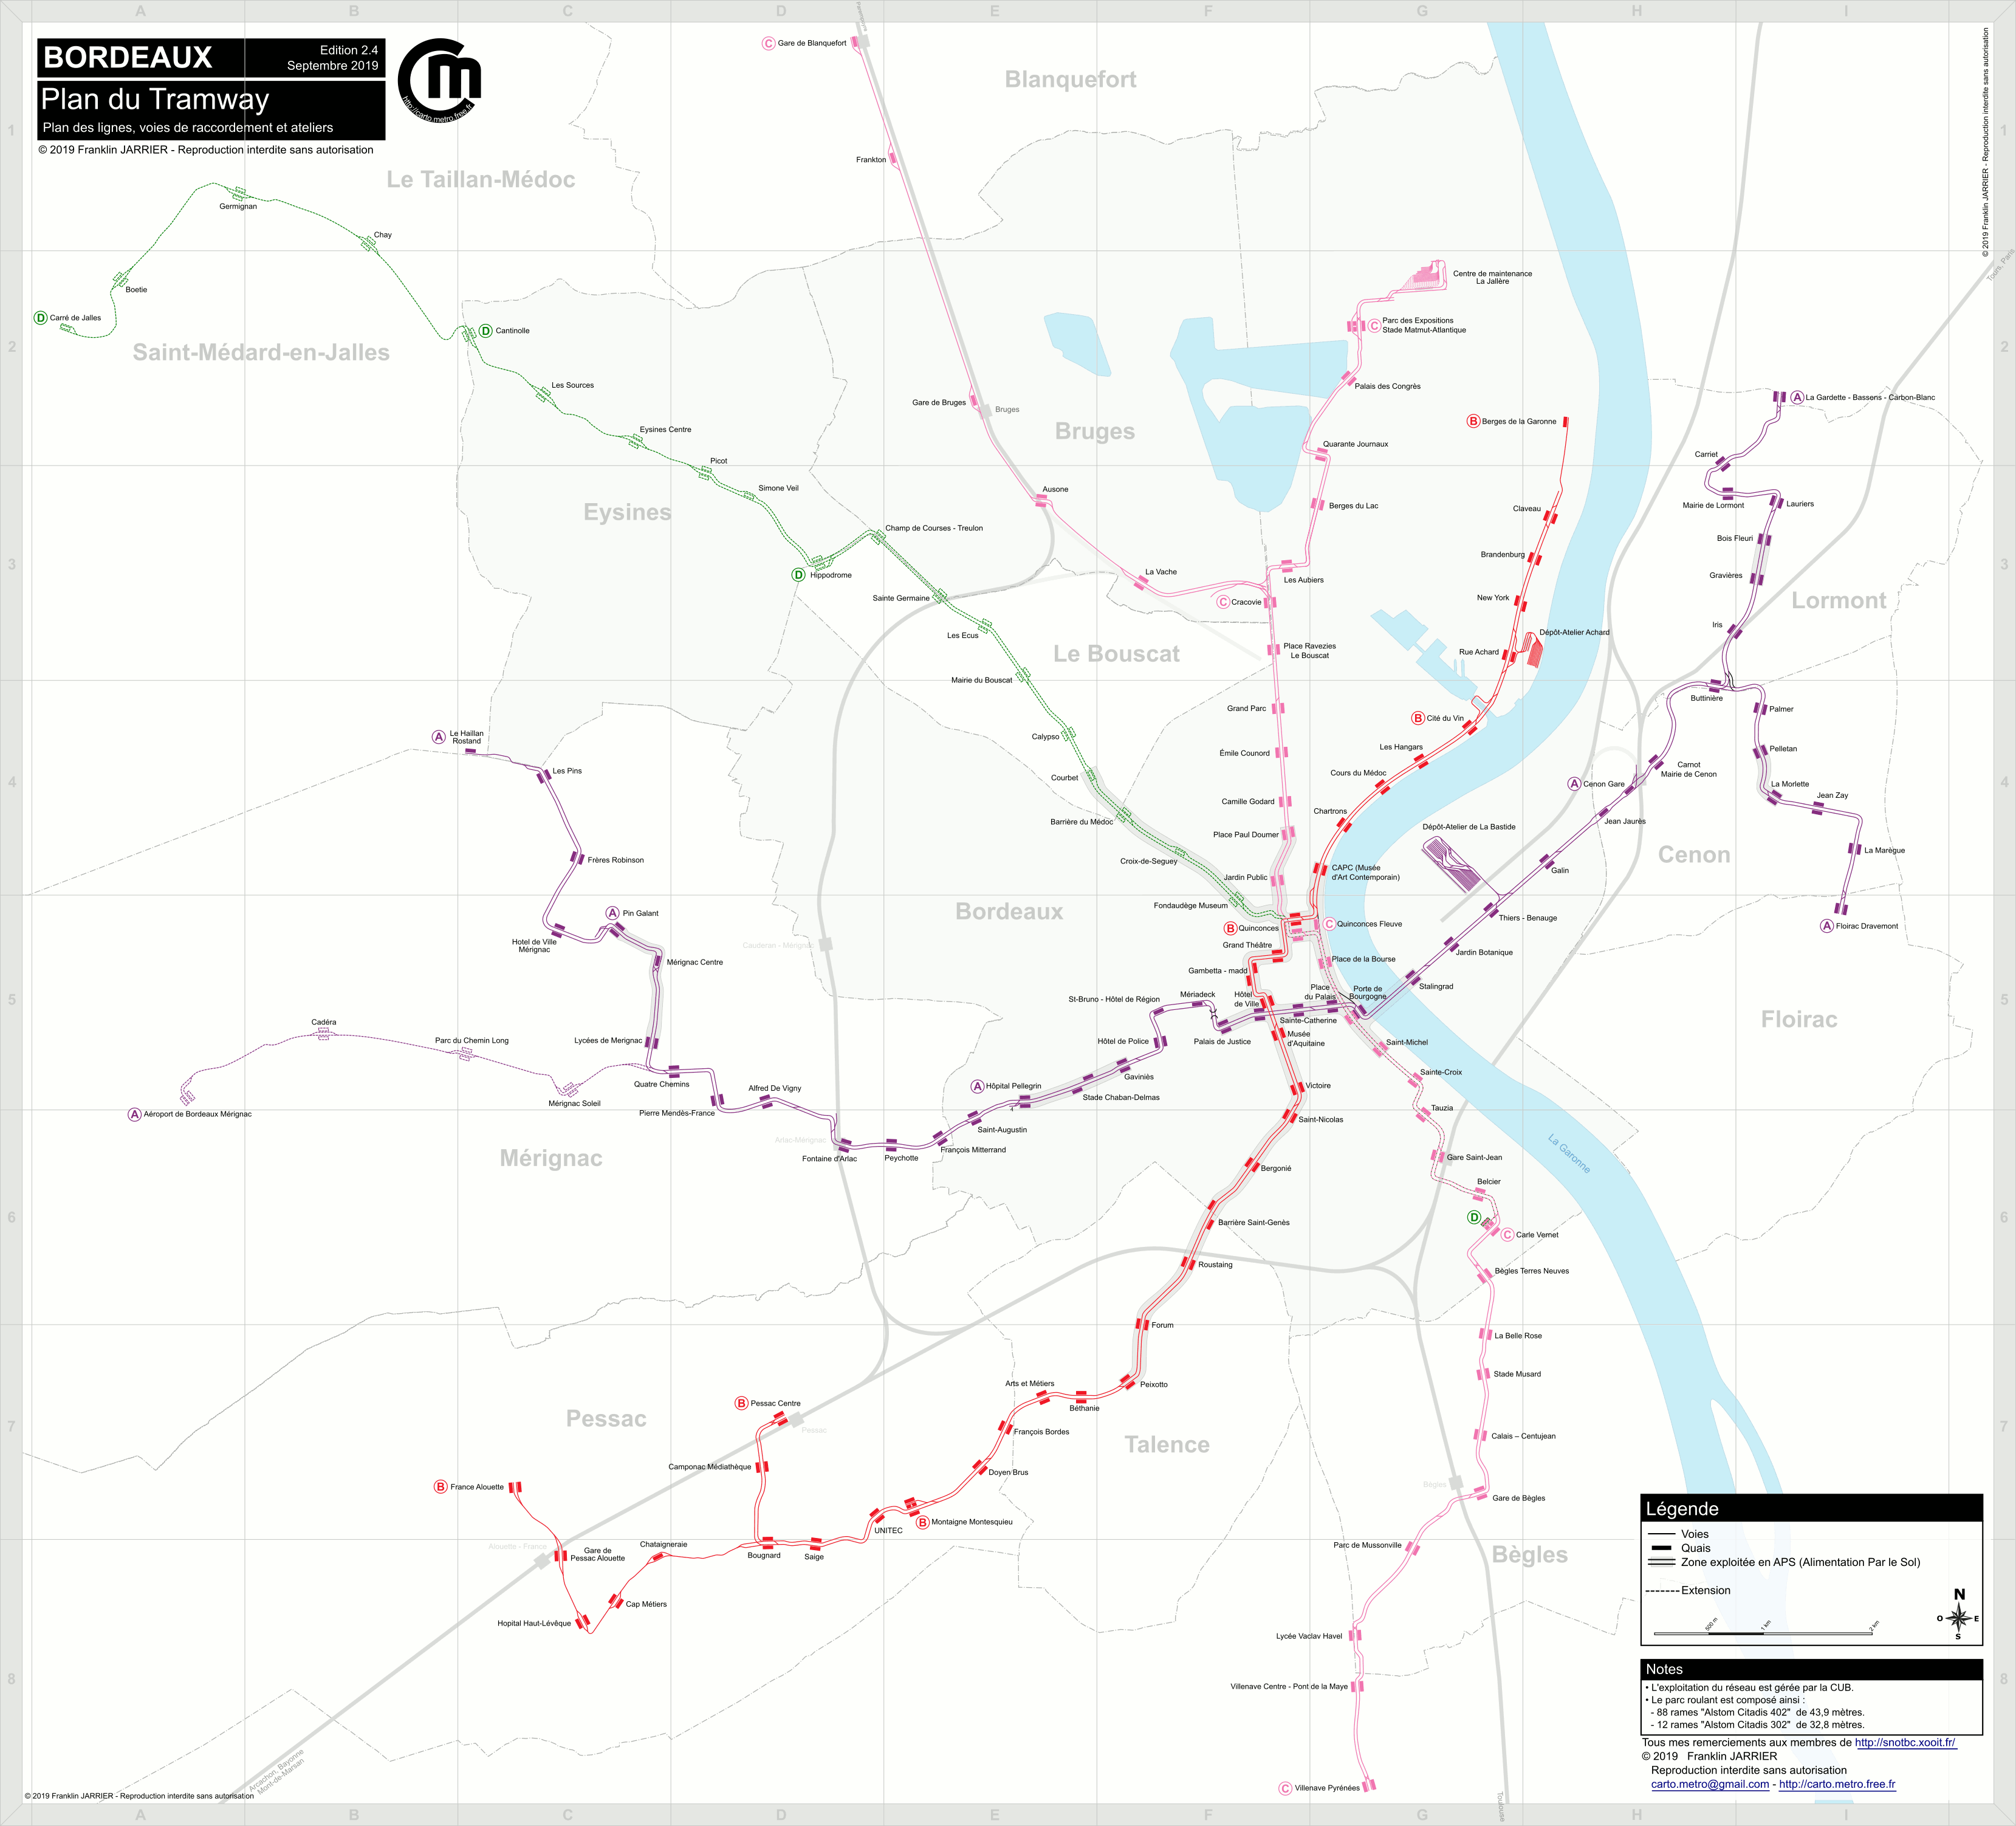 Detailled Tracks map - Paris, Lyon, Lausanne, Milan, Turin ... on map minutes, map errors, map activity, map chat, map software programs, map north america toronto, map labels, map vector art, map services, map notes,